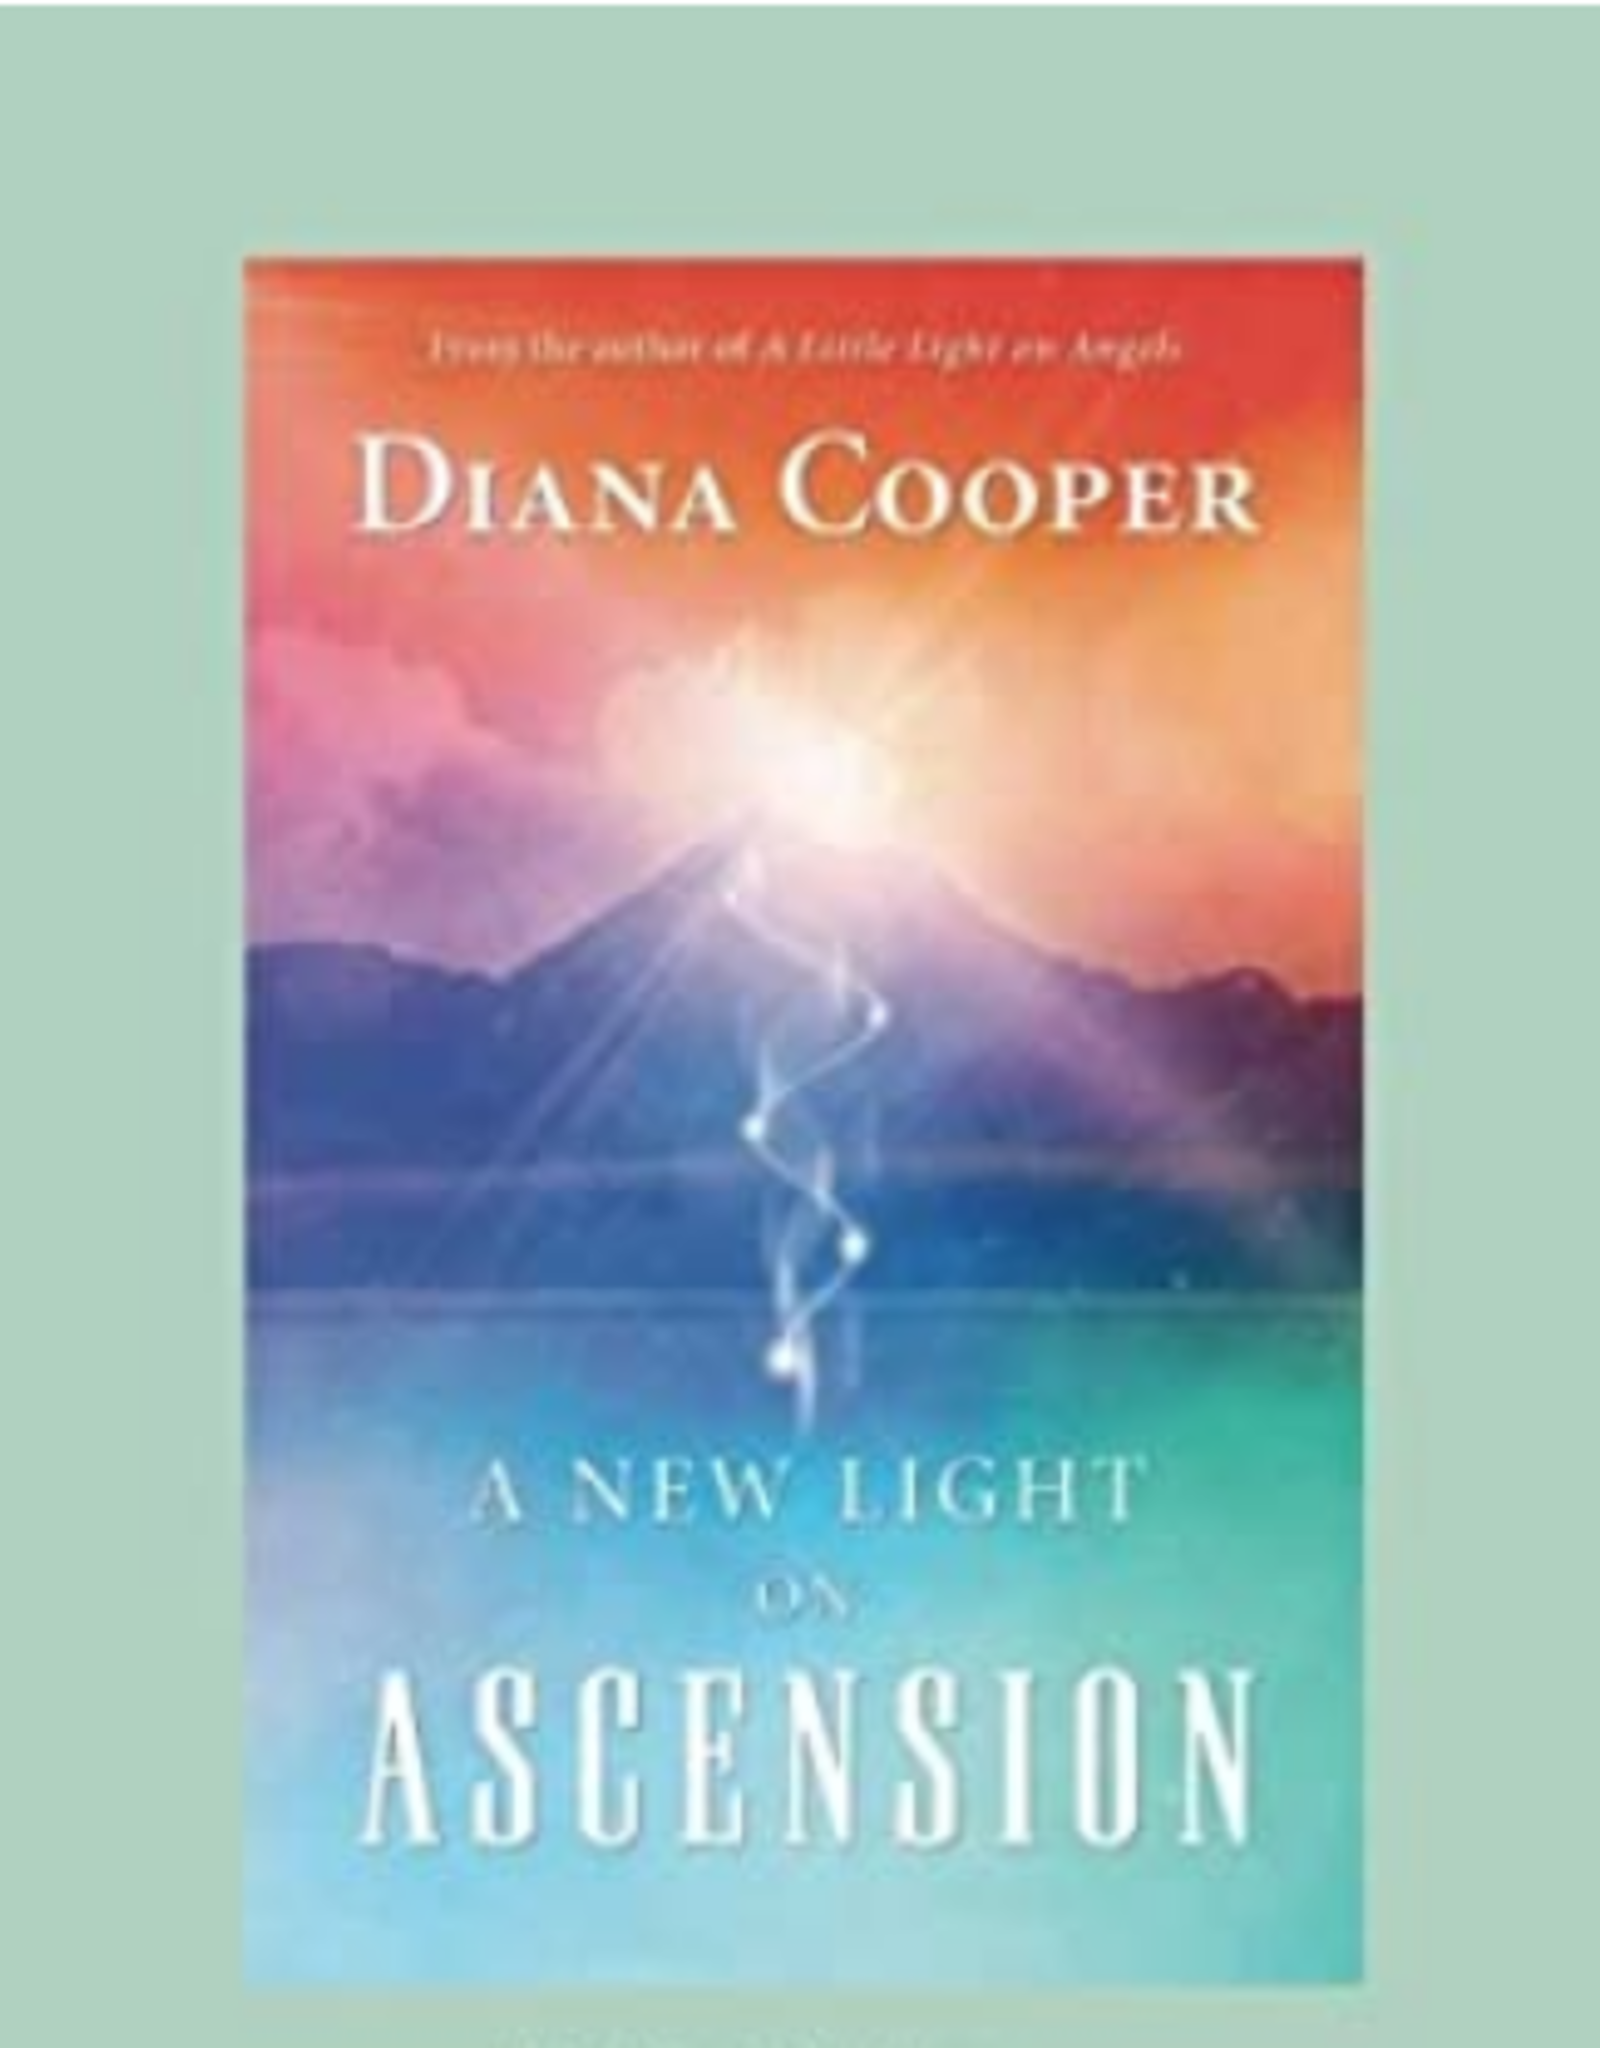 Diana Cooper A New Light on Ascension by Diana Cooper